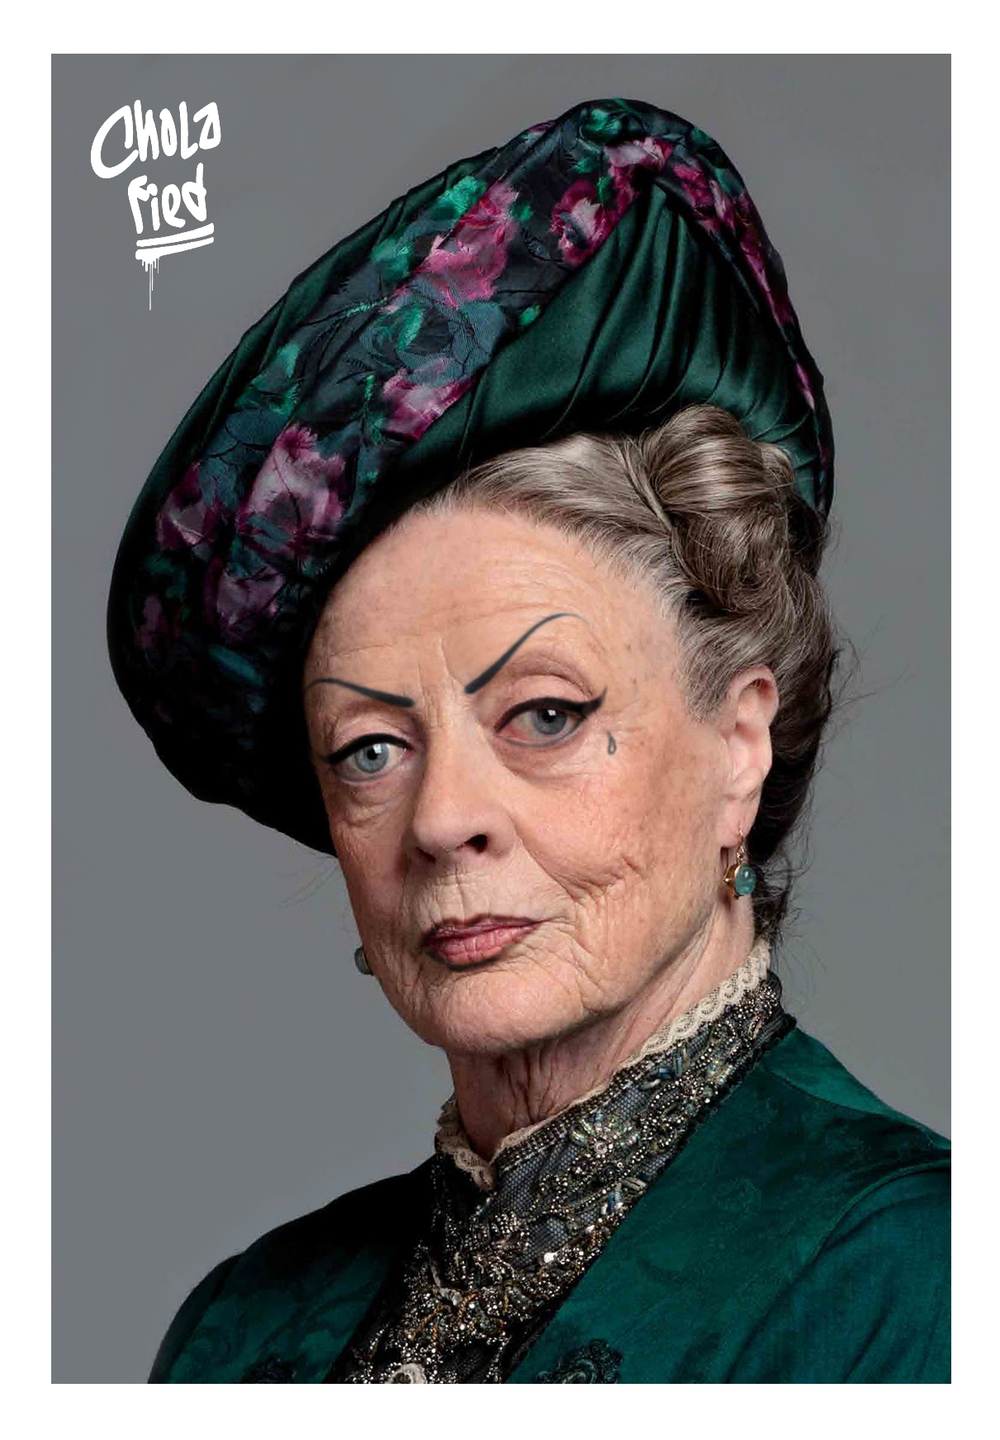 chola dowager countess of grantham